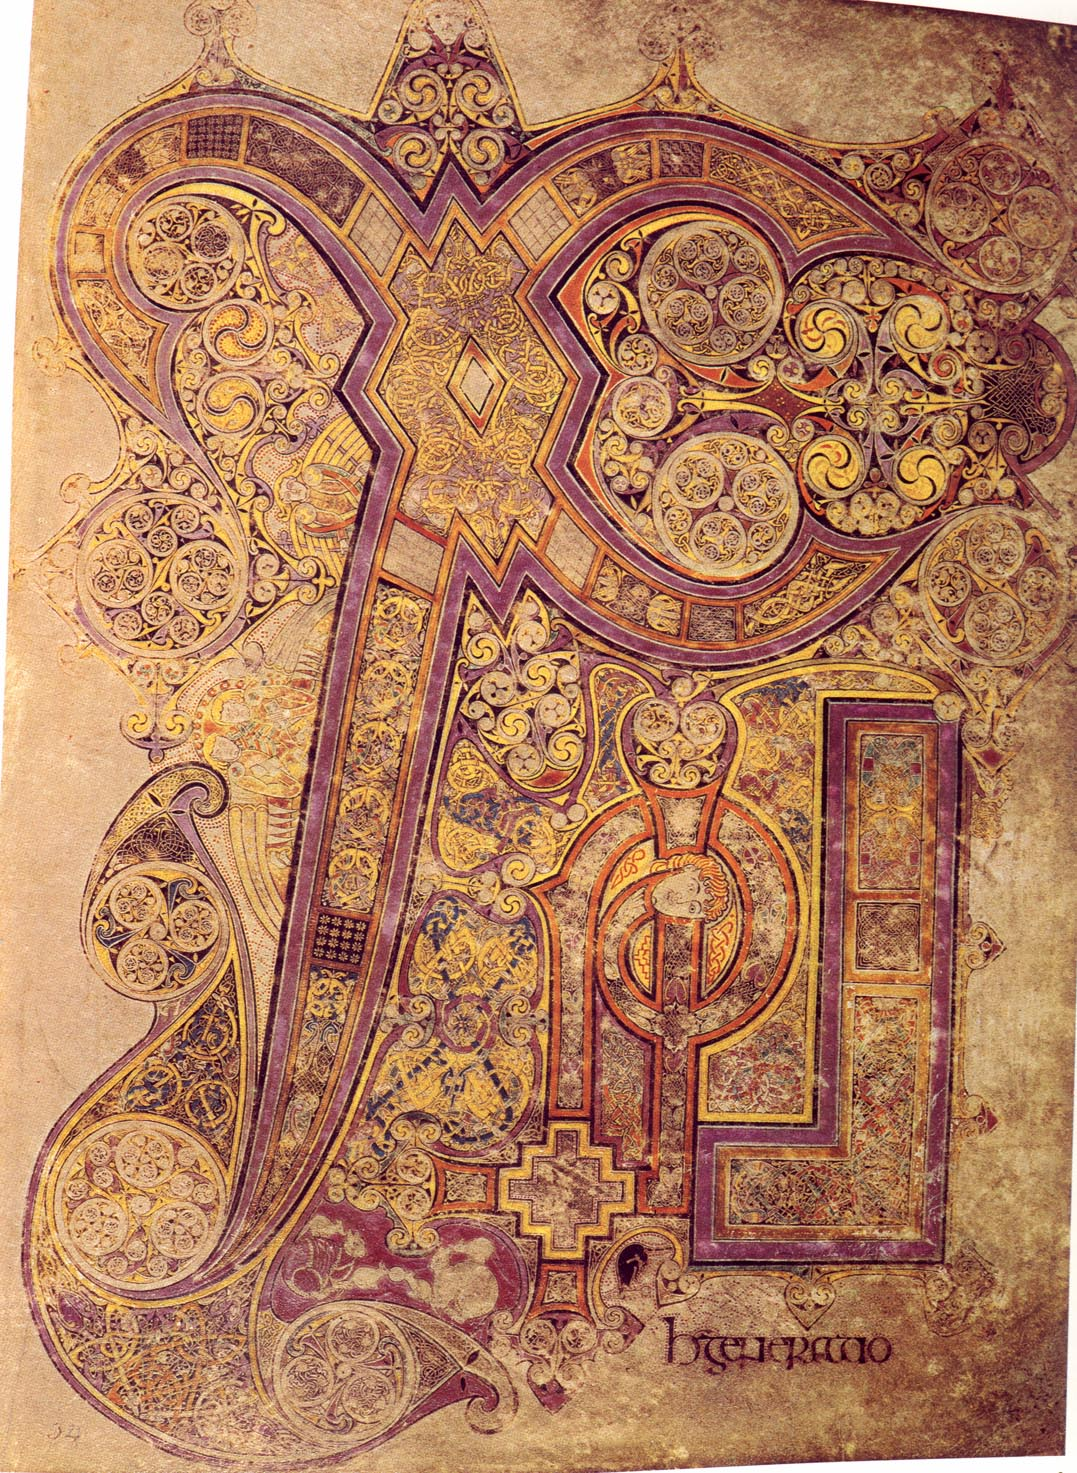 the importance of st john as a saint evangelist and apostle as portrayed in the lindisfarne gospels Important for it is one of the two gospels originally written by an apostle (the other being the gospel of john old syriac gospels, both found at st.